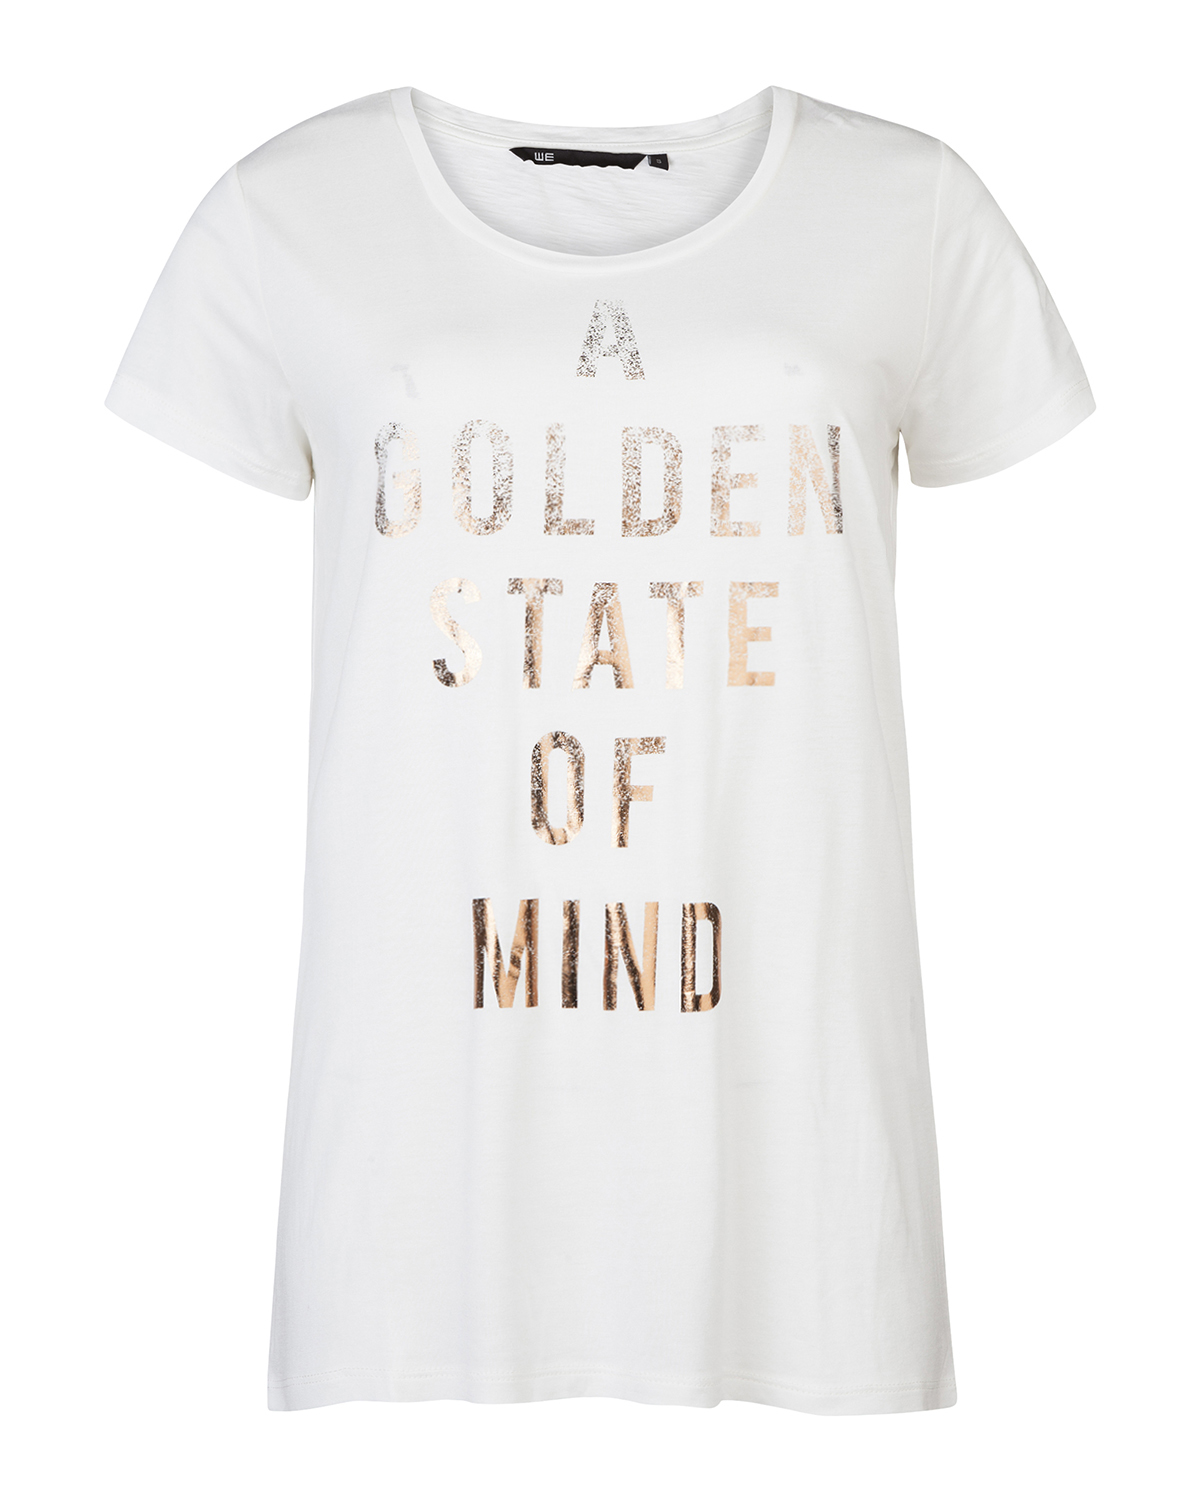 Dames gold text t shirt 79366946 we fashion for Photo t shirts with text